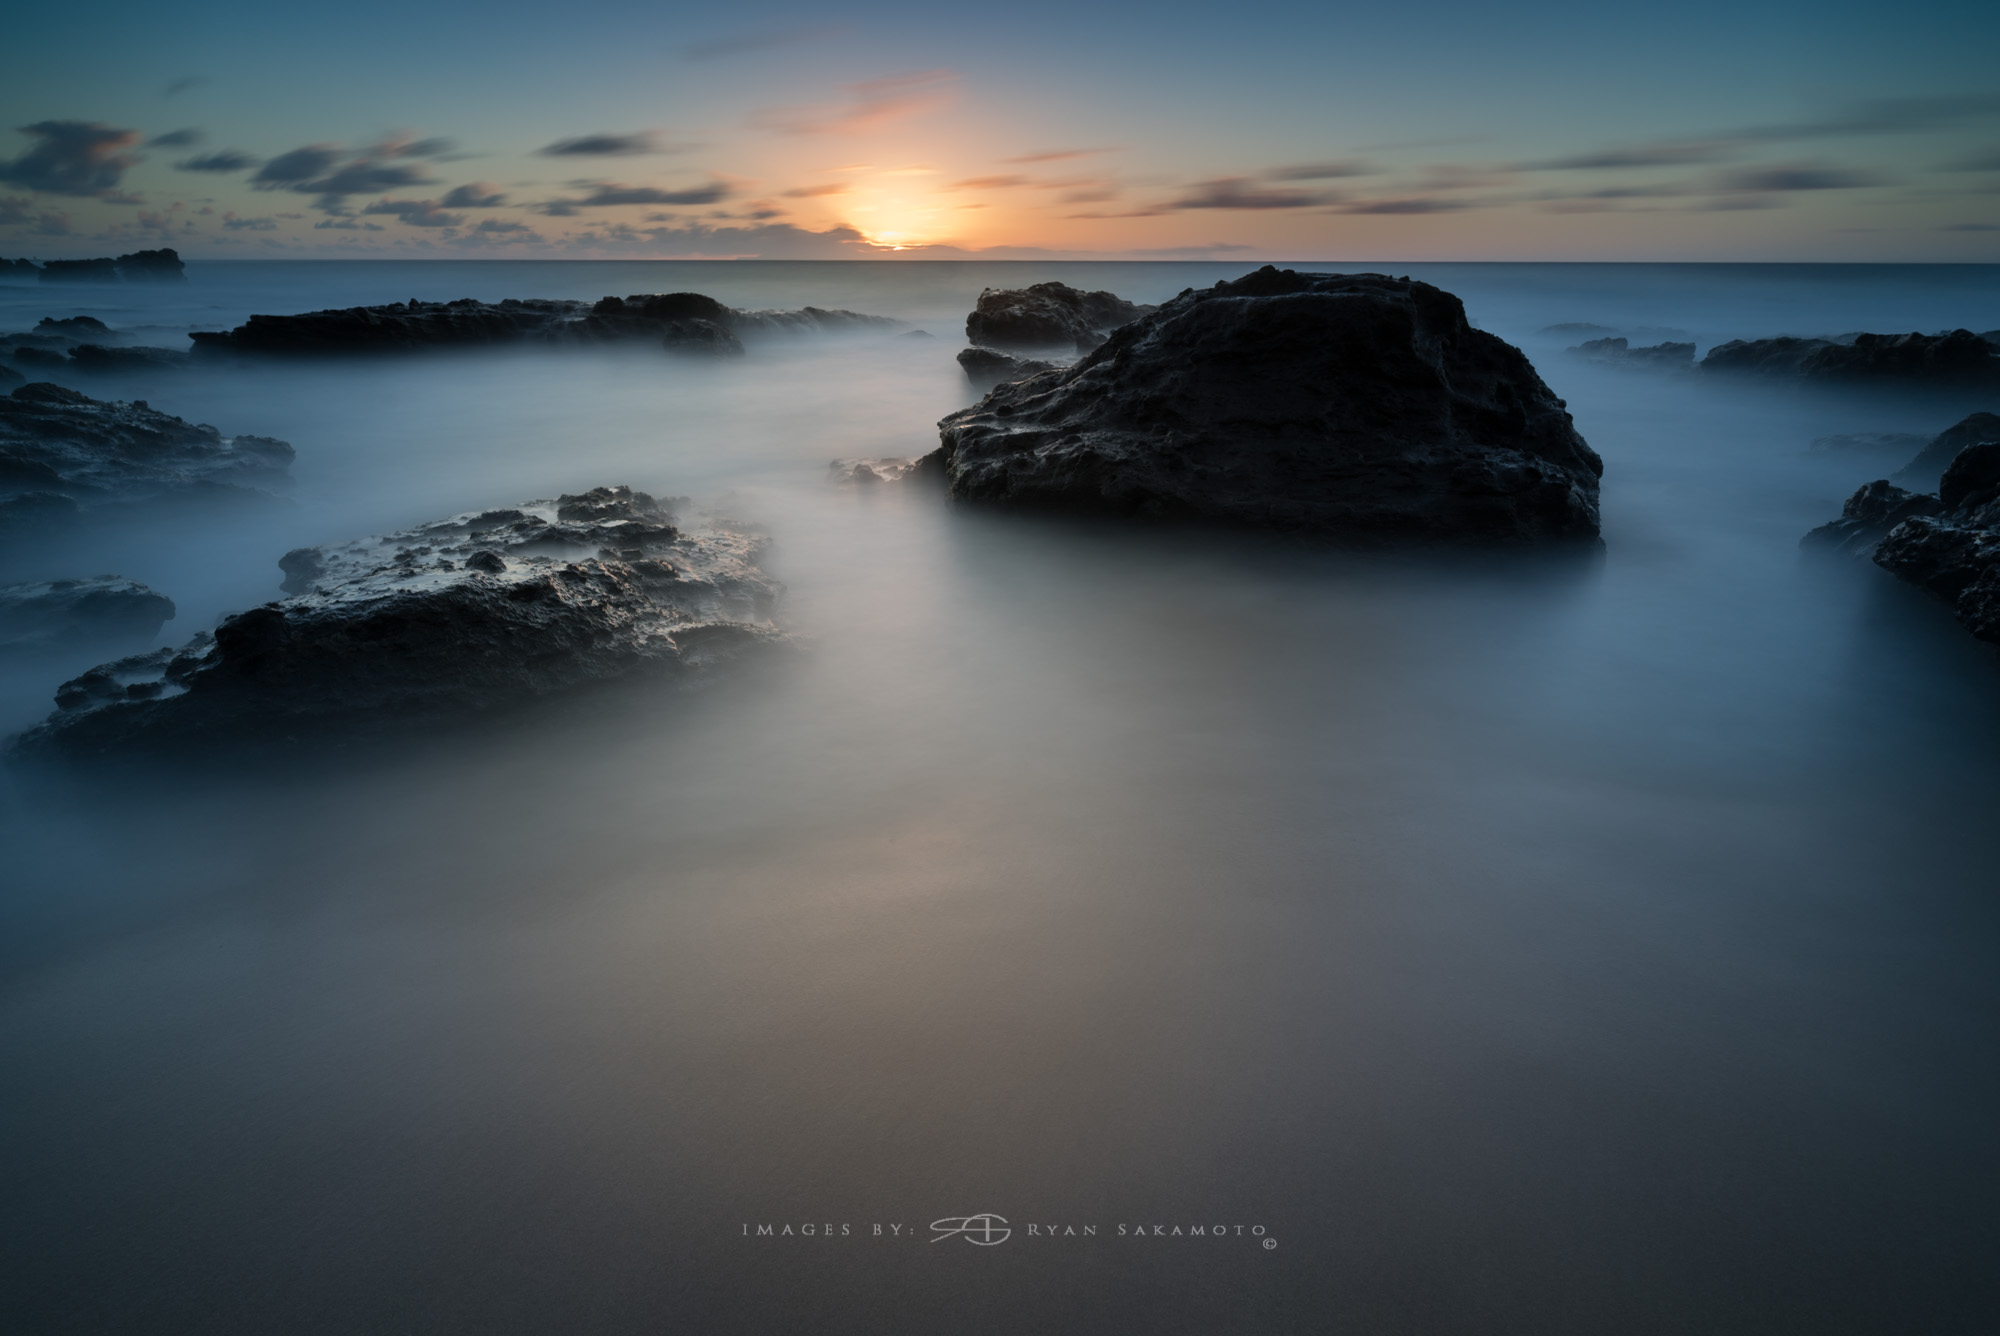 Sunrise Photography Collection   Lee Filter Big Stopper & 3 stop medium grad   Sony A7S II |  122 sec. |  f/8  |  ISO 50  |  Zeiss Batis 2.8/18mm    Edited in Lightroom CC 2015   Copyright 2016 Ryan Sakamoto, All rights reserved